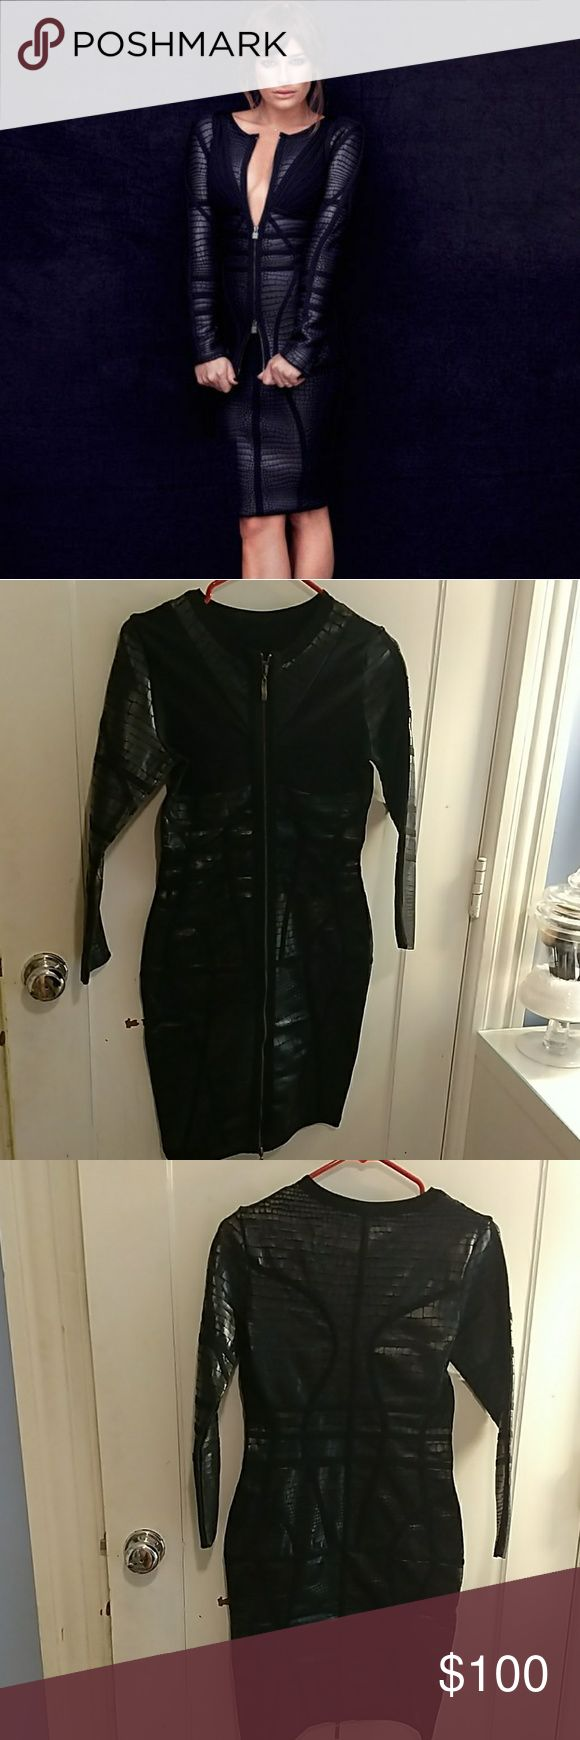 Black faux leather bodycon dress A sexy front zipped long sleeve bandage dress in black. The dress features a snakeskin inspired texture that works to conceal bulges and faux leather?adds edginess to your look. The fabric of the dress is strong and sturdy so it shapes your body and defines your curves. It's anti-Static, Anti-Wrinkle. Bought this dress and after months of not wearing it decided to put it but I have a really big chest and when I put it in it ripped as seen on picture. Never…